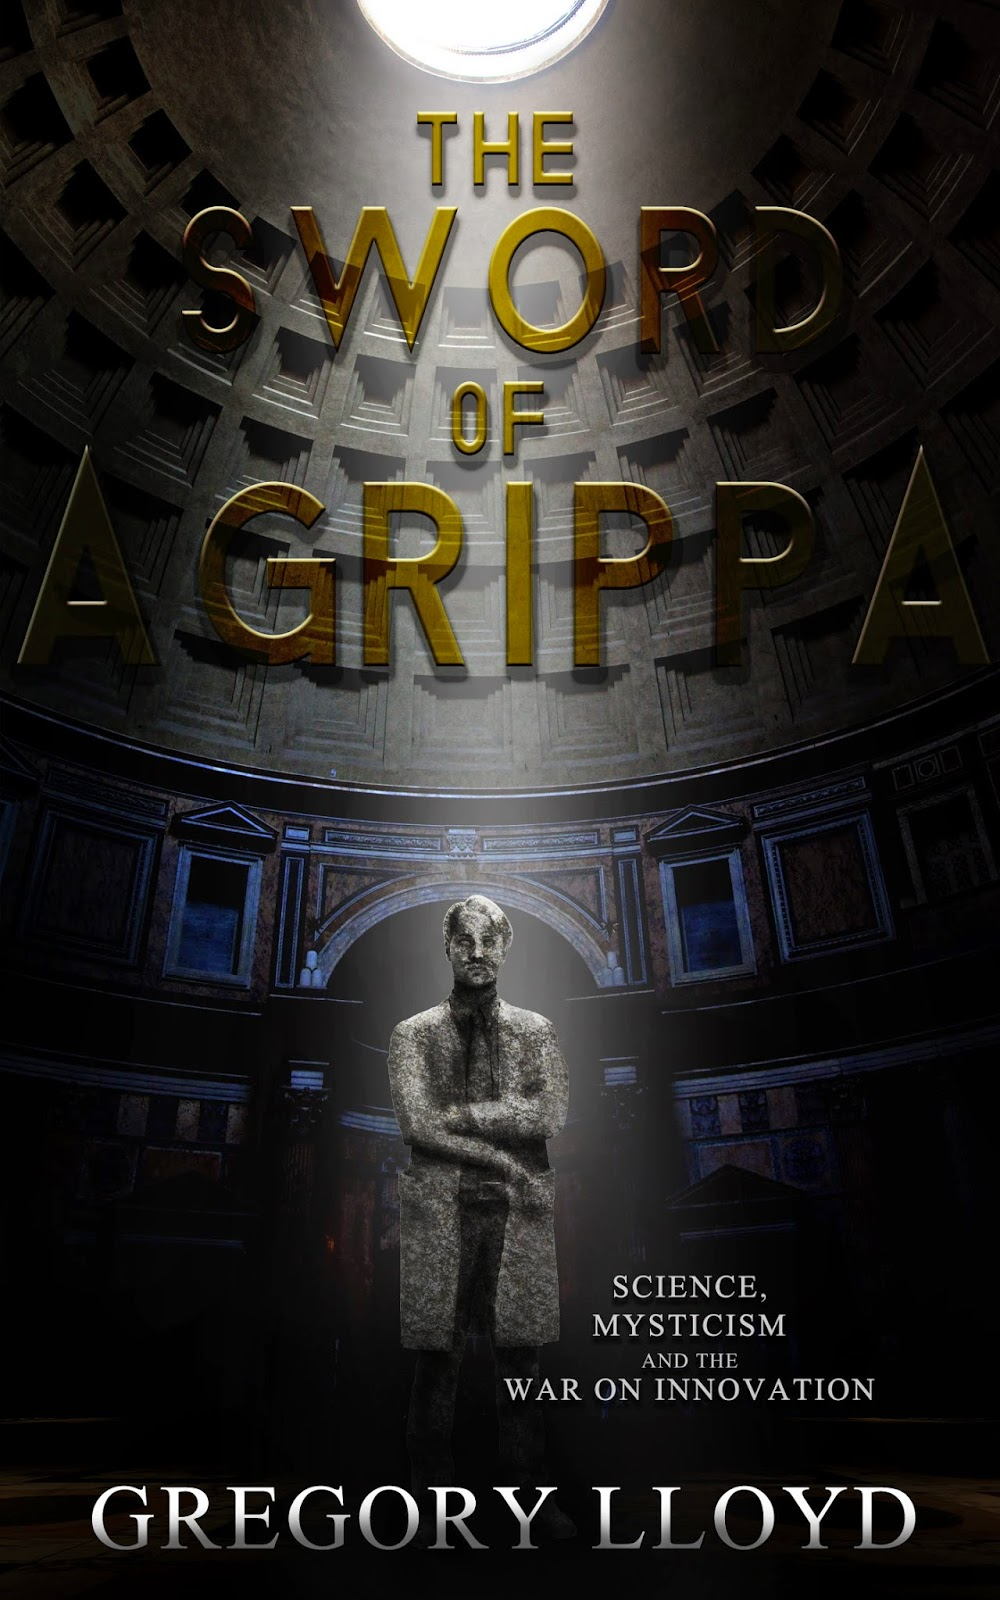 sword of agrippa, gregory lloyd